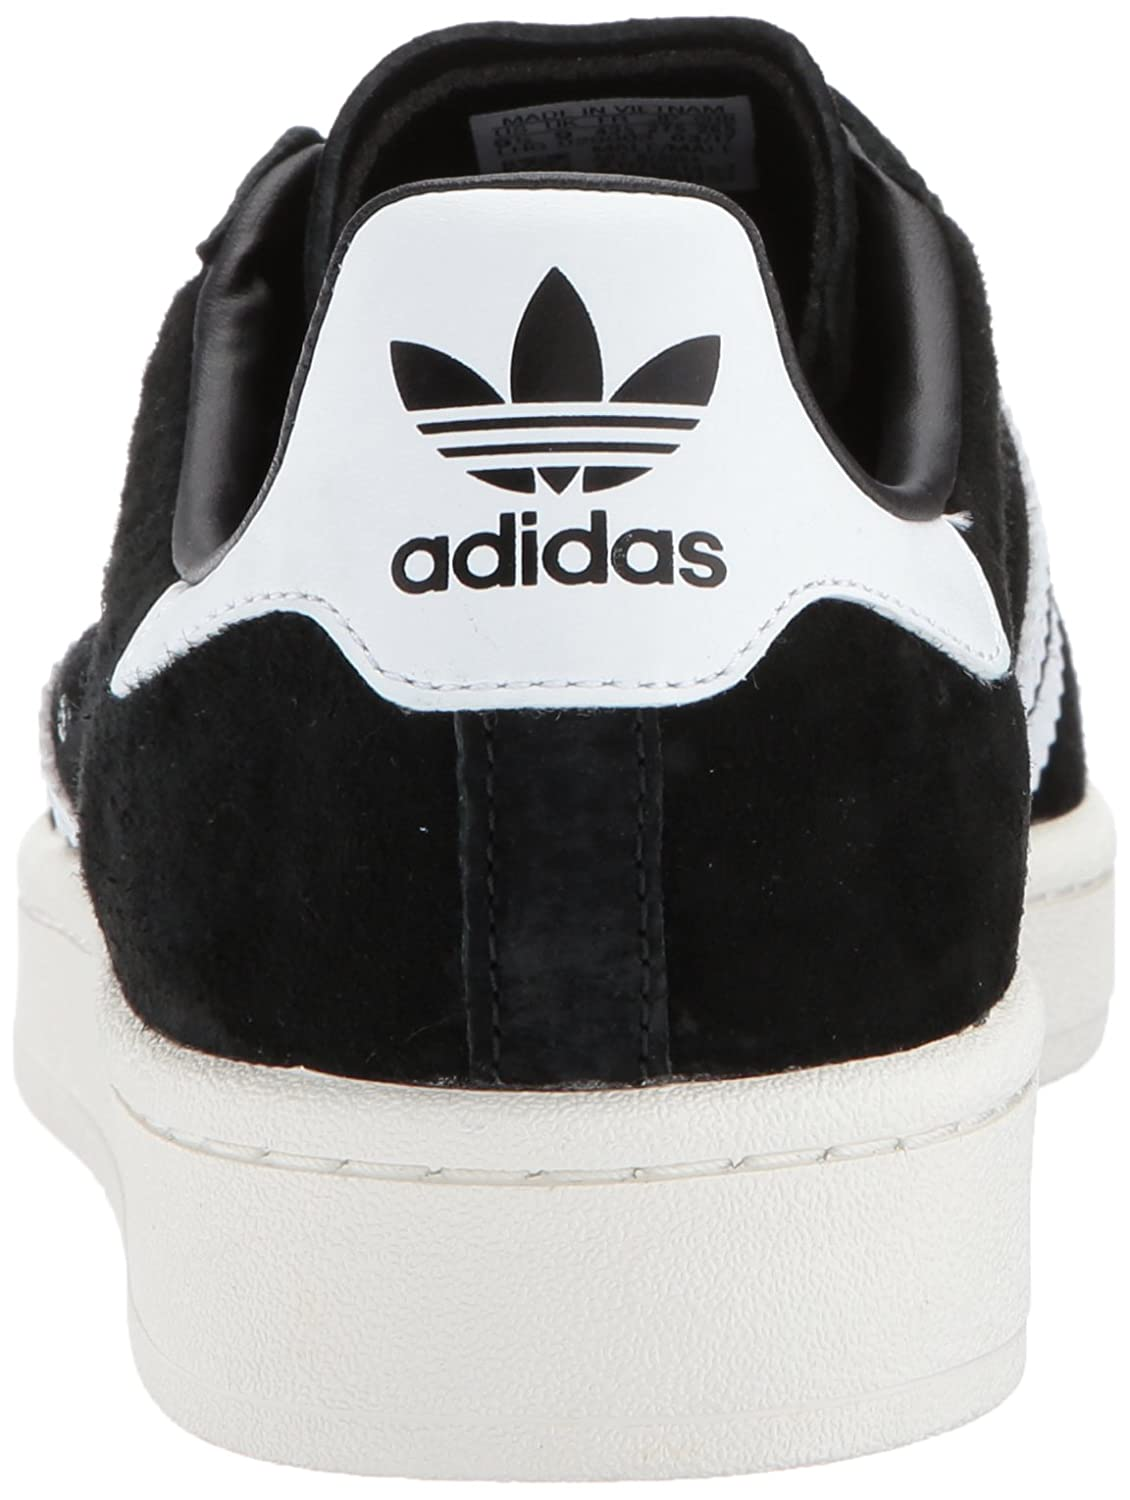 Adidas-Campus-Men-039-s-Casual-Fashion-Sneakers-Retro-Athletic-Shoes thumbnail 12